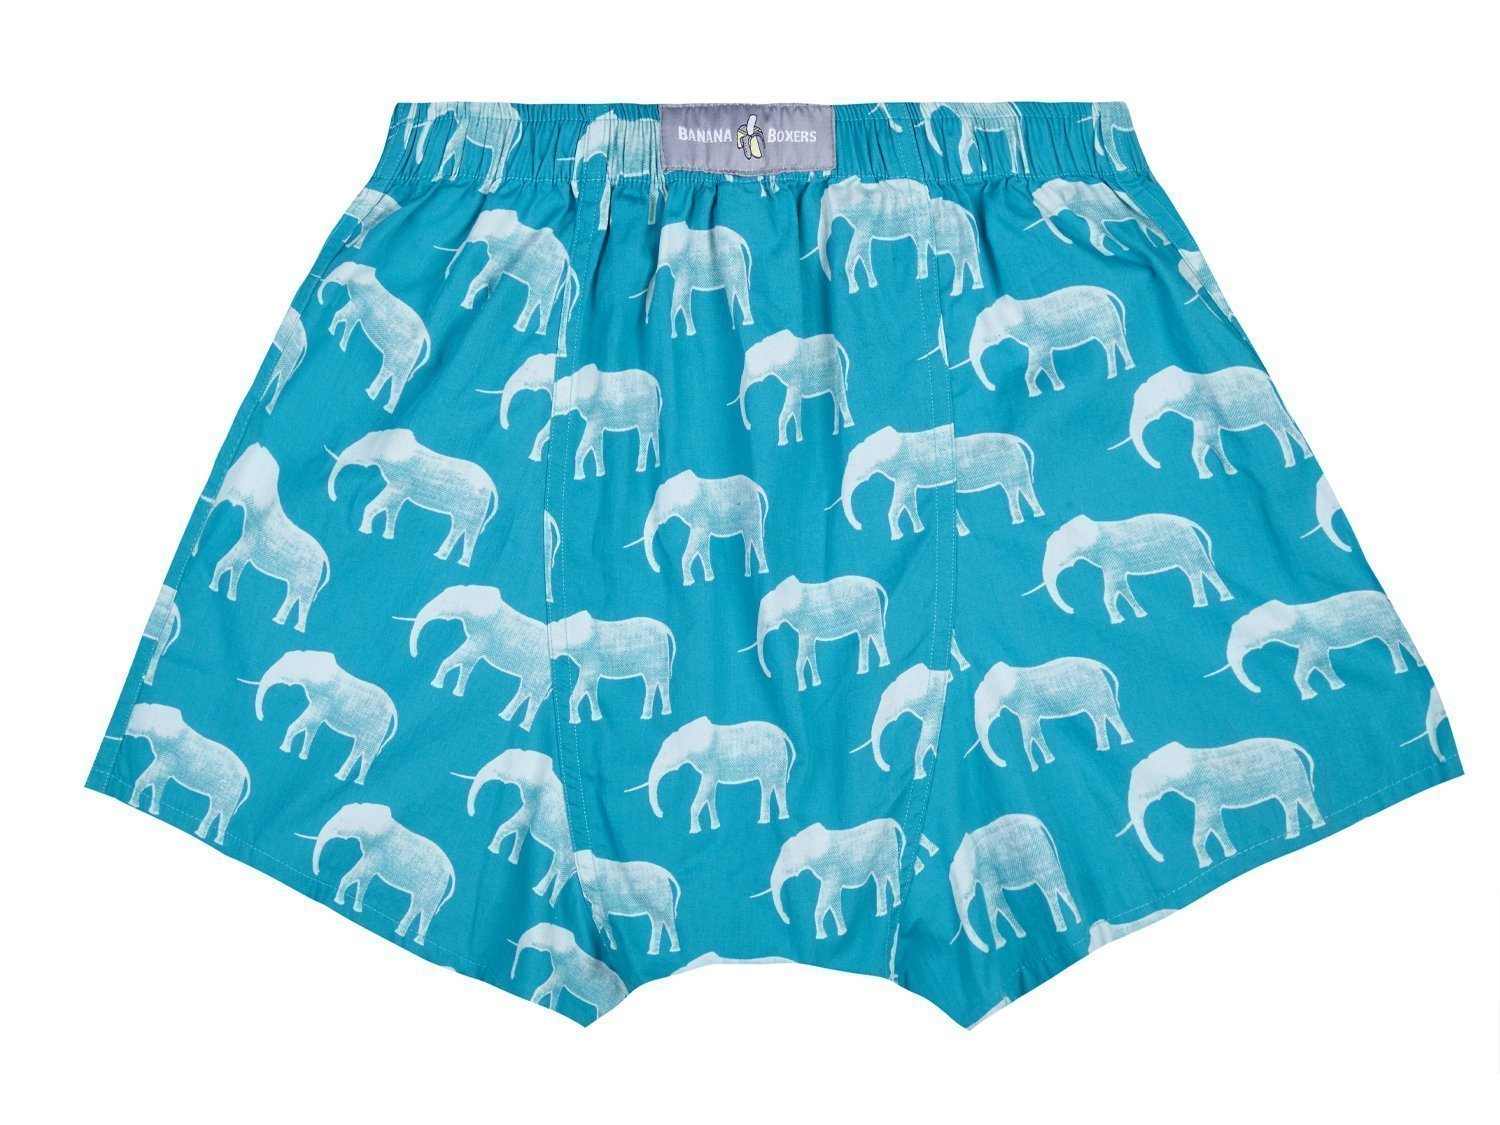 Ems Ellie's Boxer Shorts back